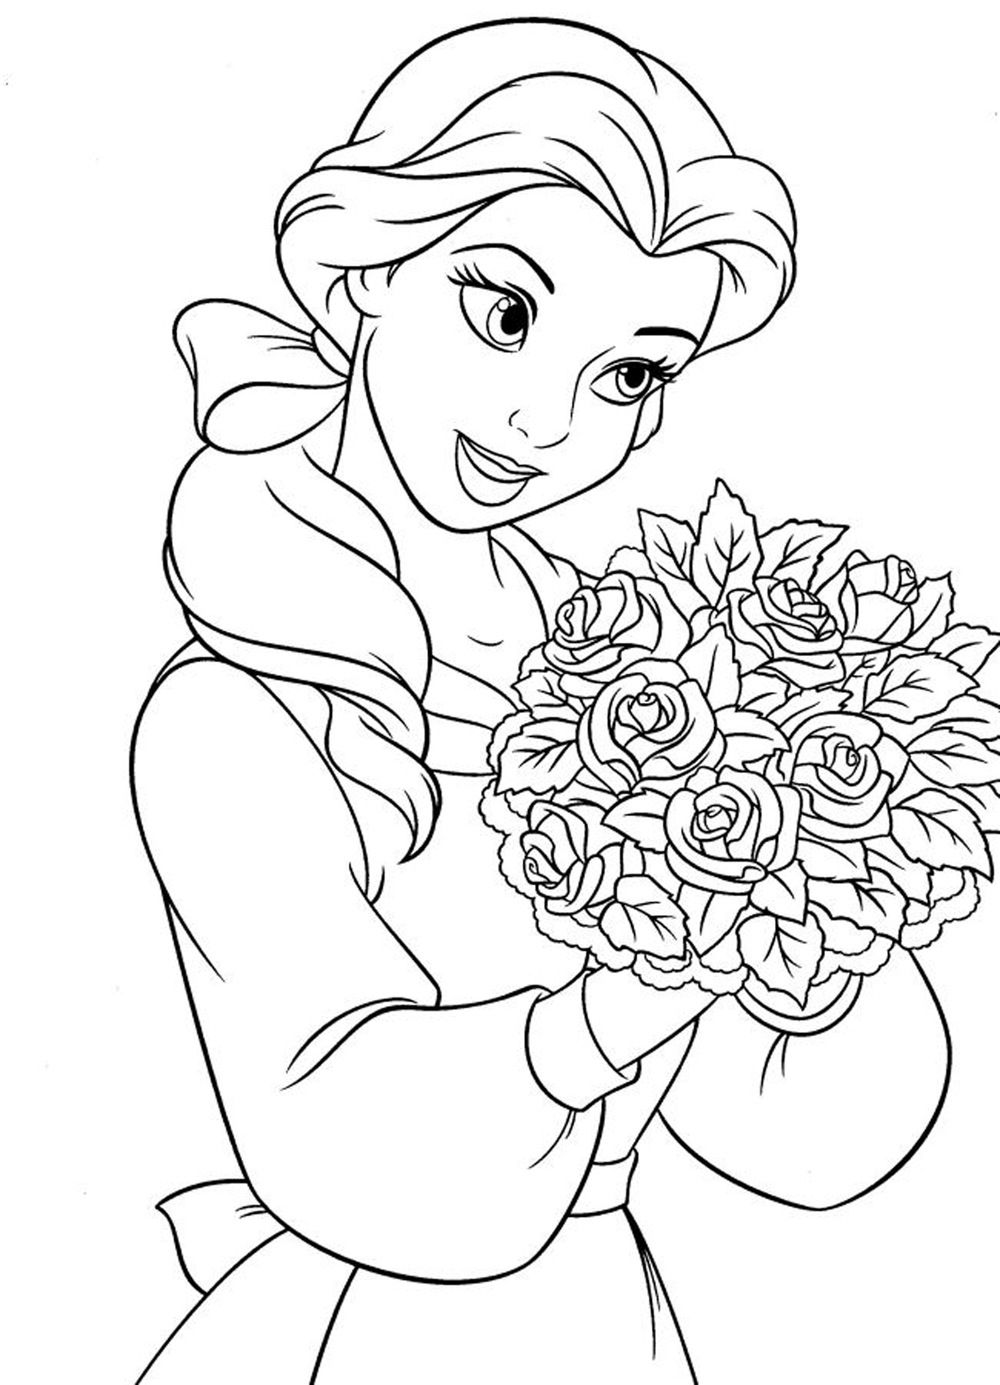 coloring pages for girls disney disney coloring pages for girls terrific coloring pages for girls pages coloring disney